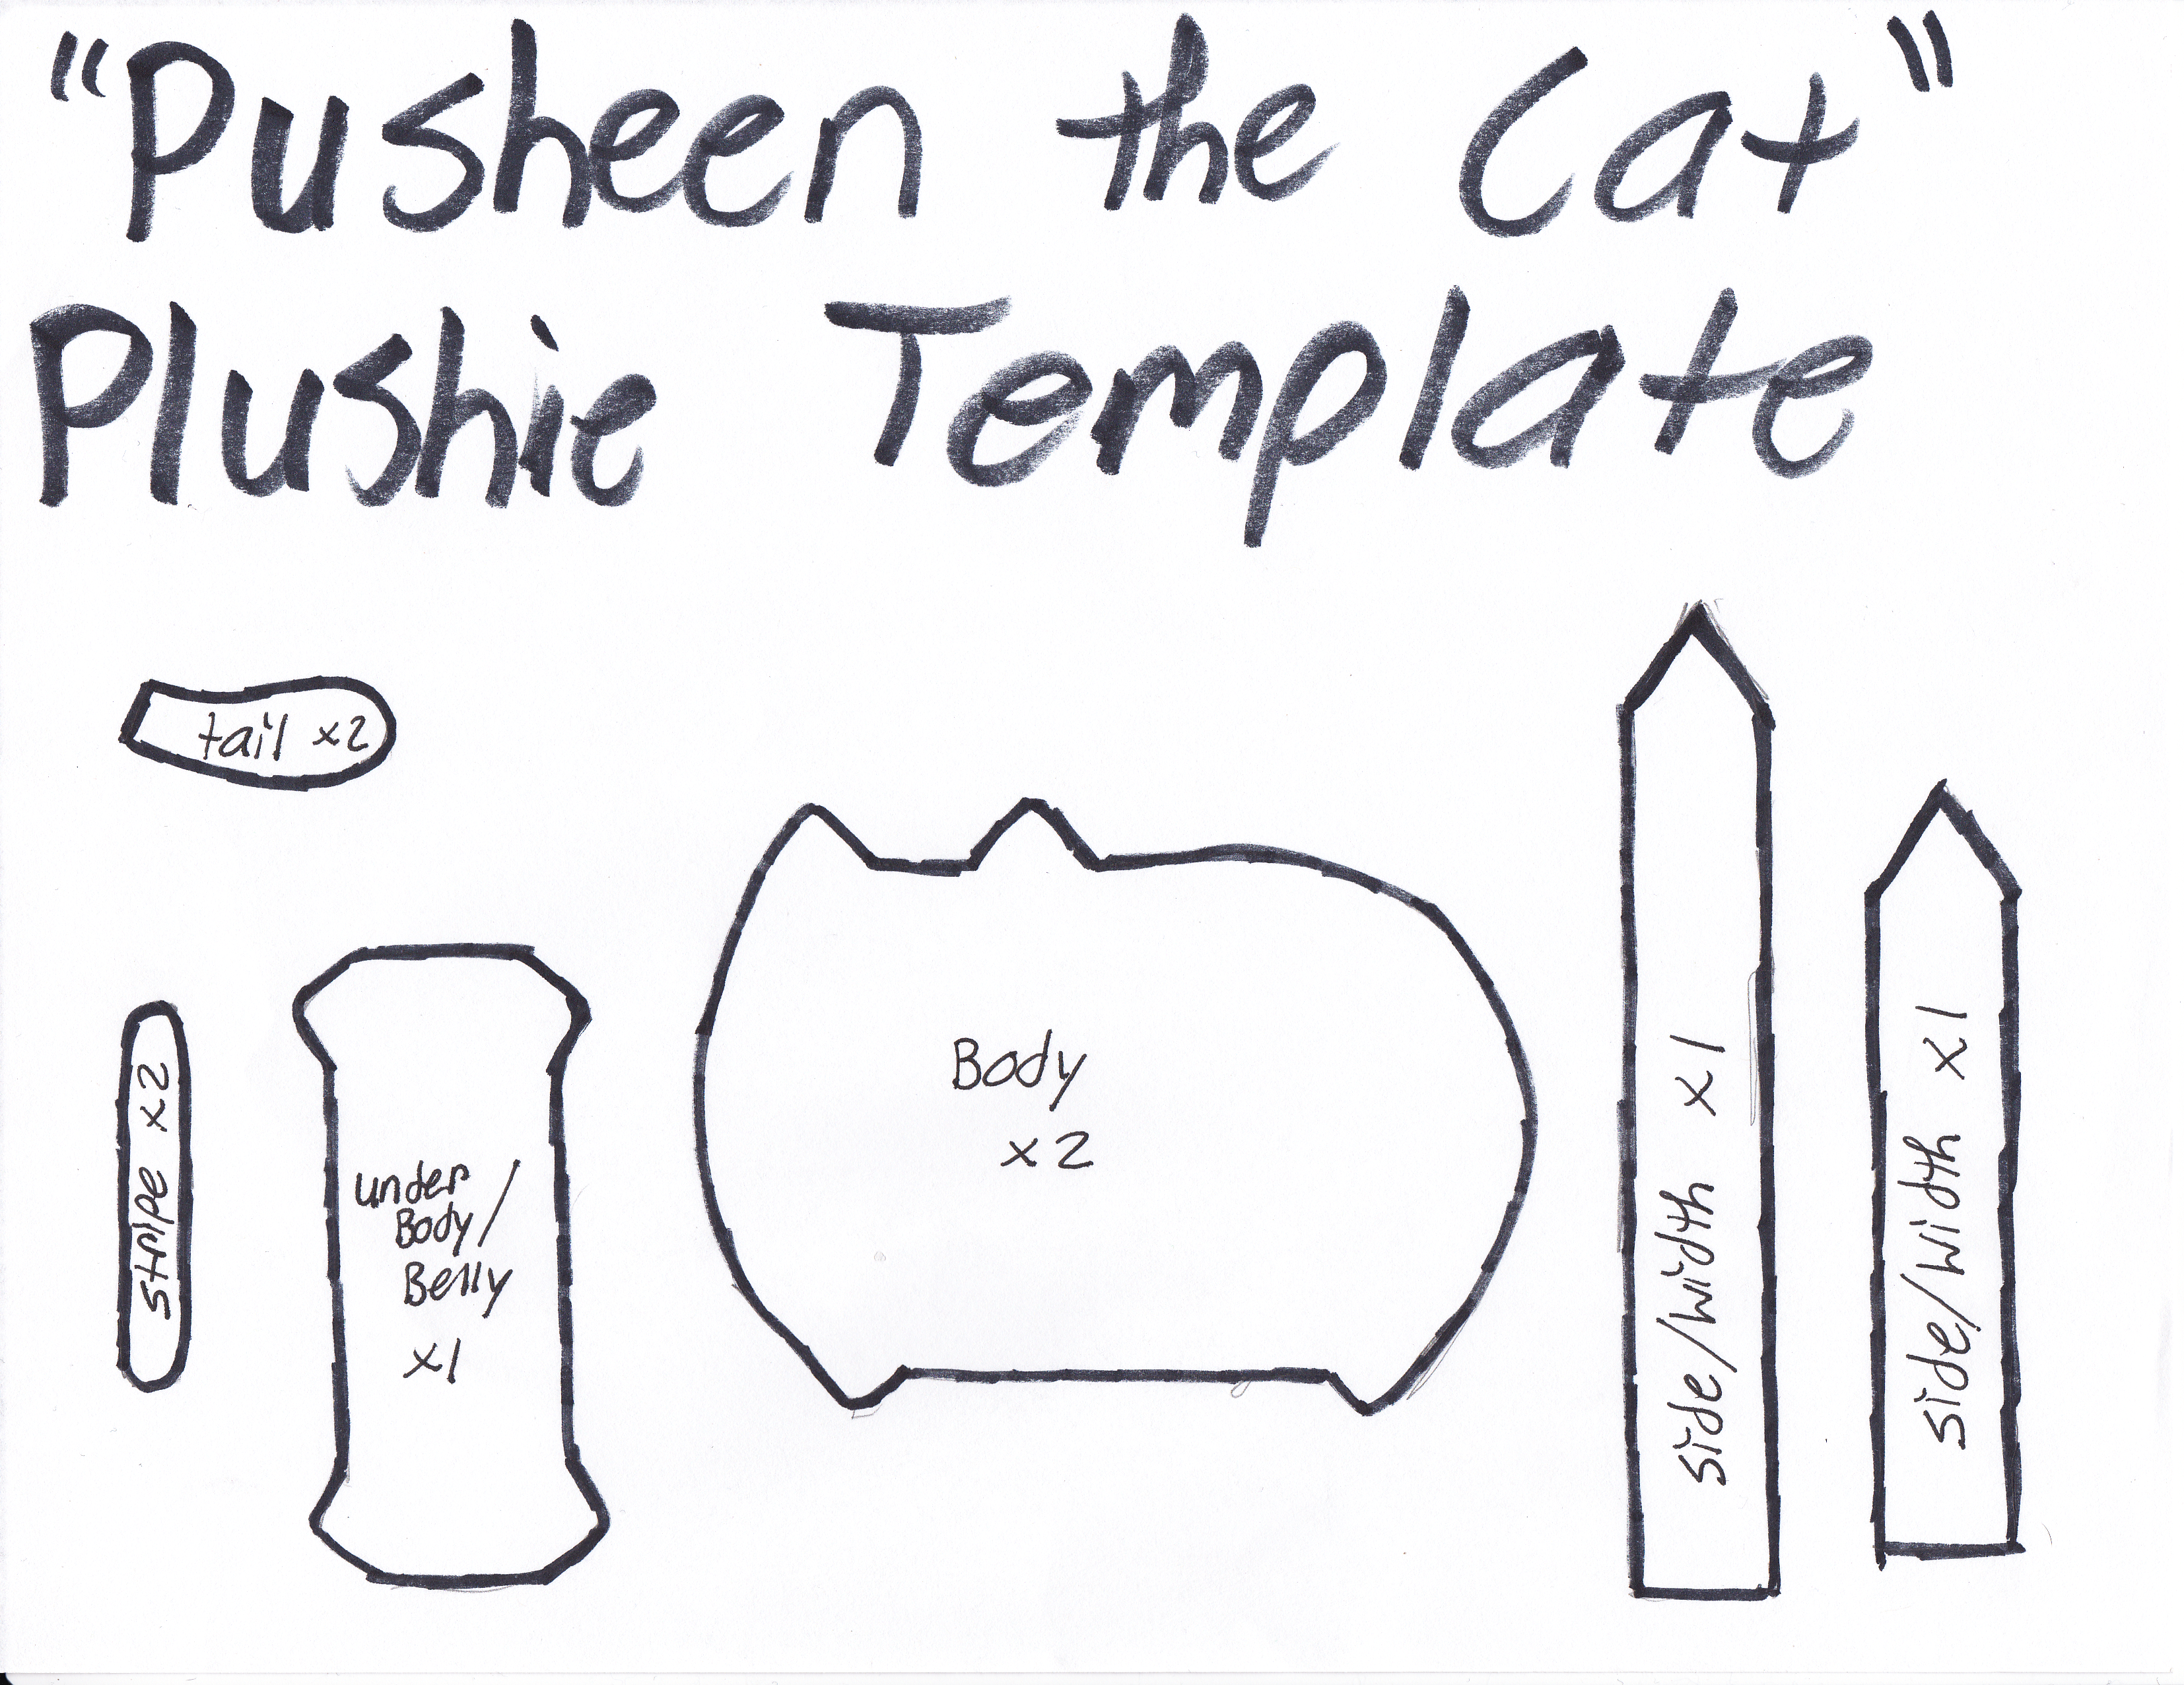 If you're a fan of Pusheen, or simply like cats, this tutorial ...